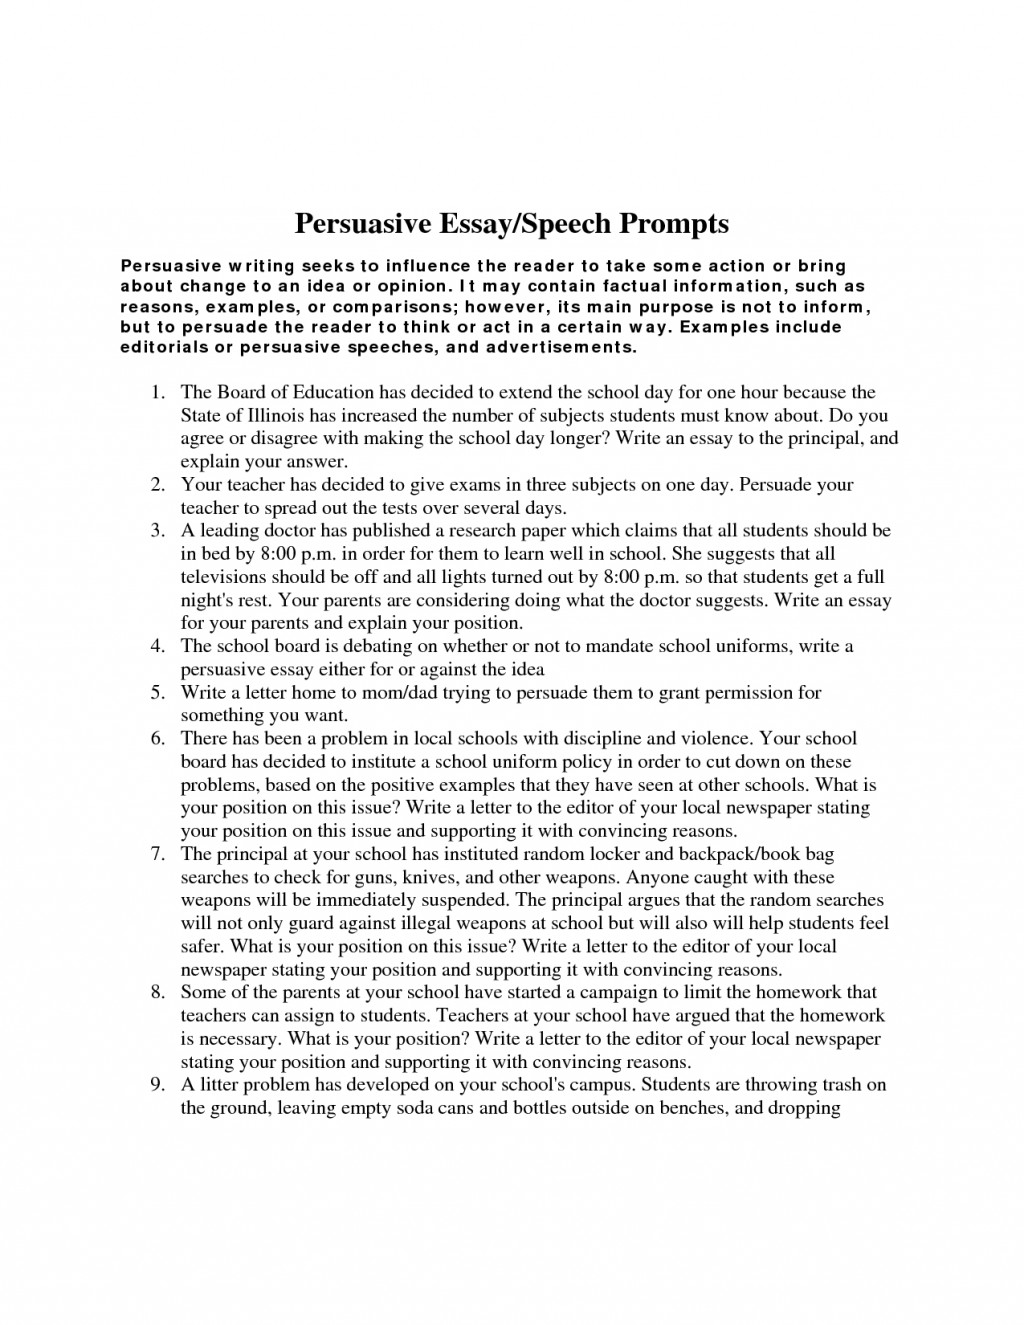 006 Essay Example Prompt Persuasive Fascinating Writing Examples Generator Romance For 5th Grade Large